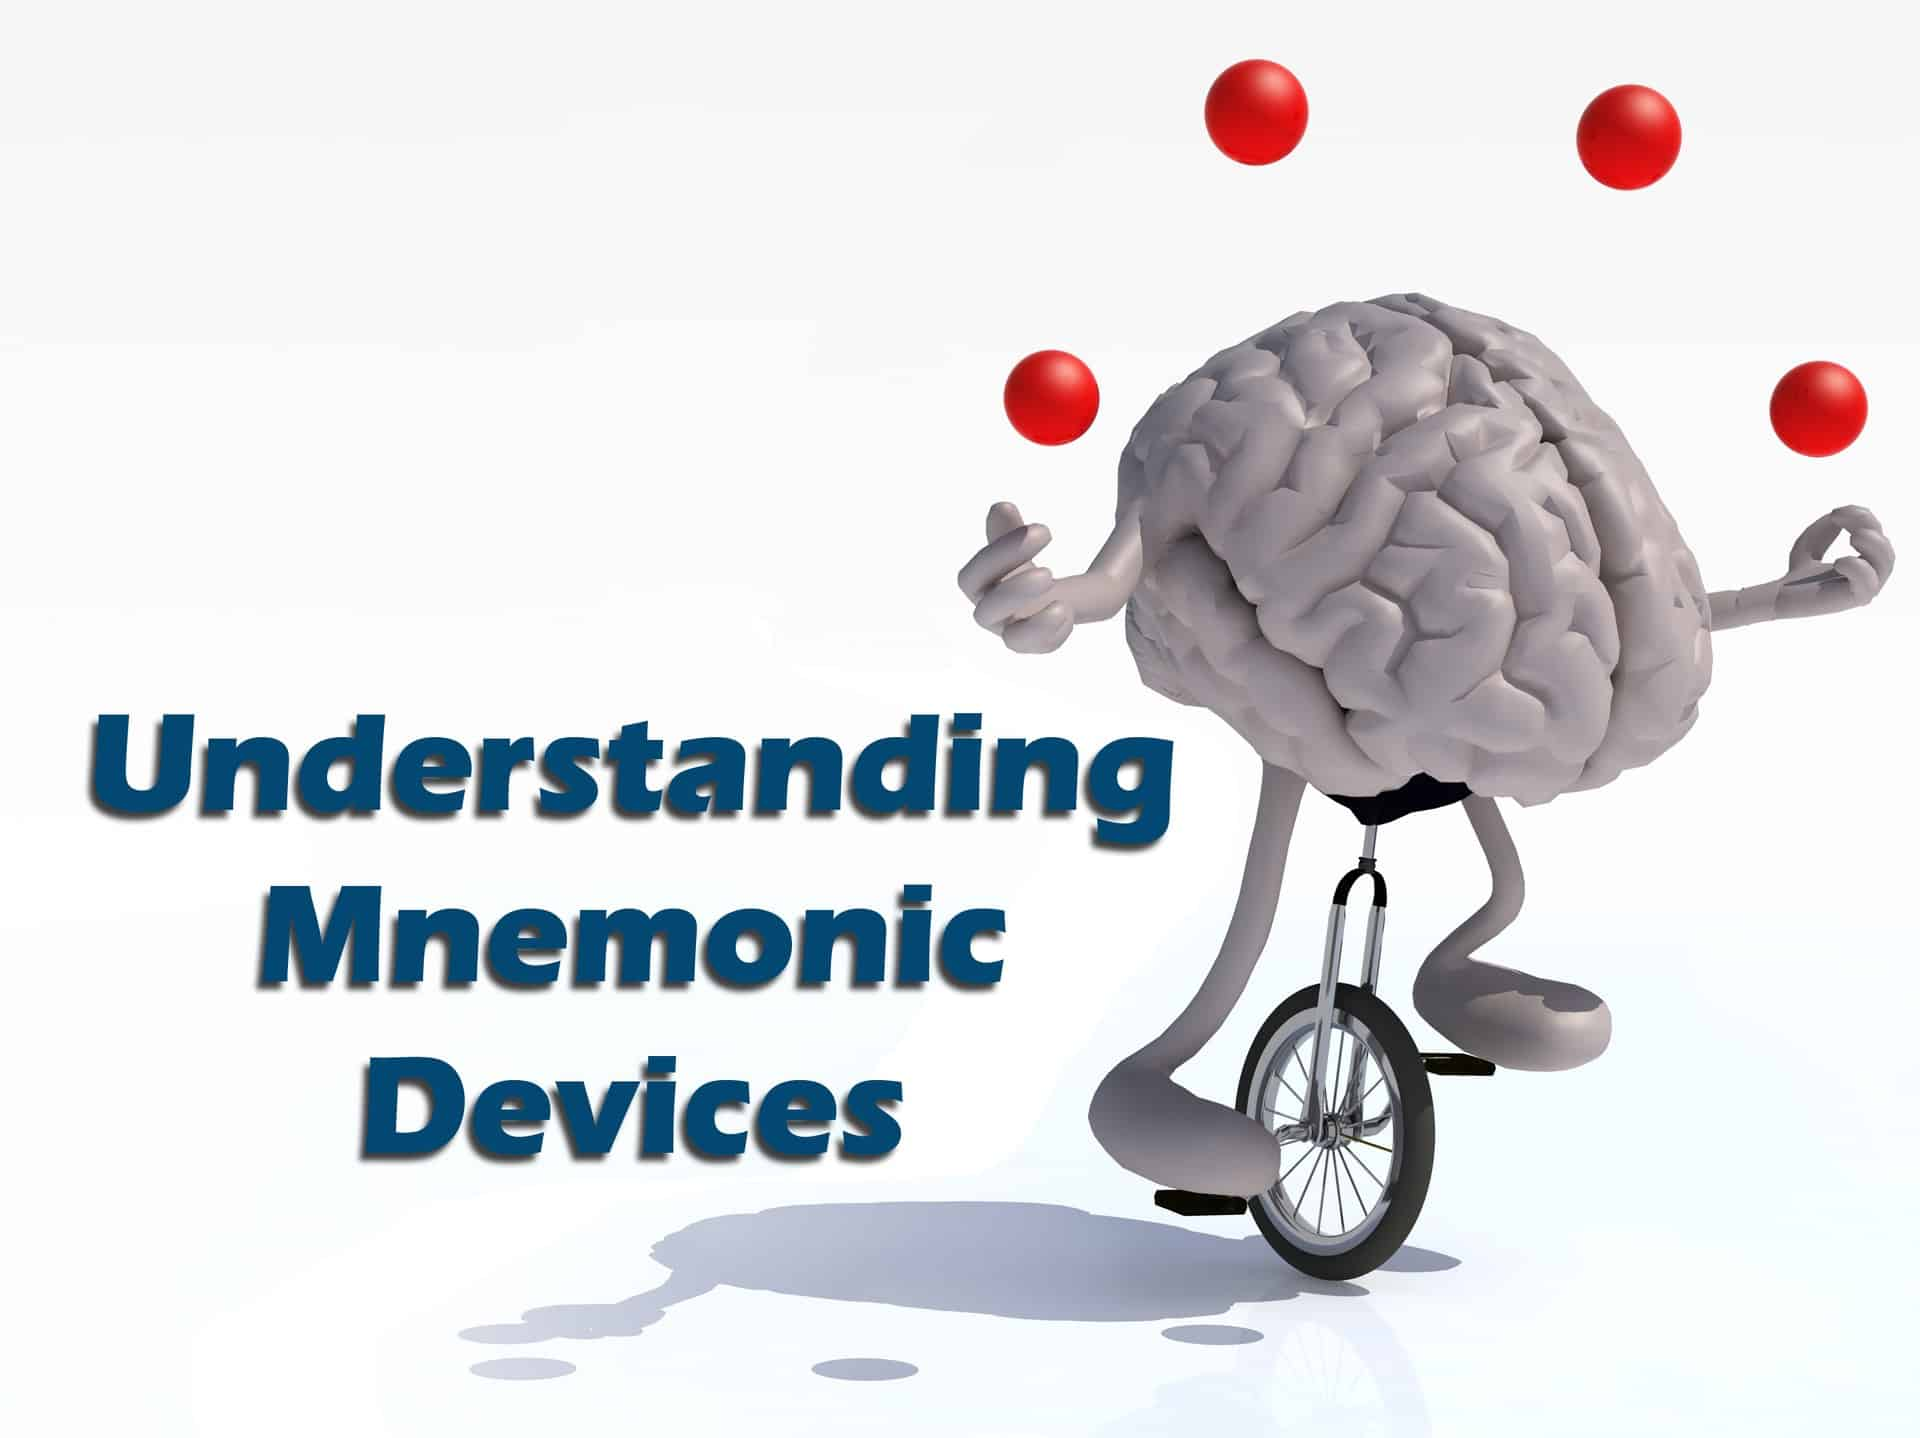 mnemonic devices A mnemonic device is used as a memory tool by students of all ages, and this list includes mnemonics for many common lists or orders that students need to memorize.